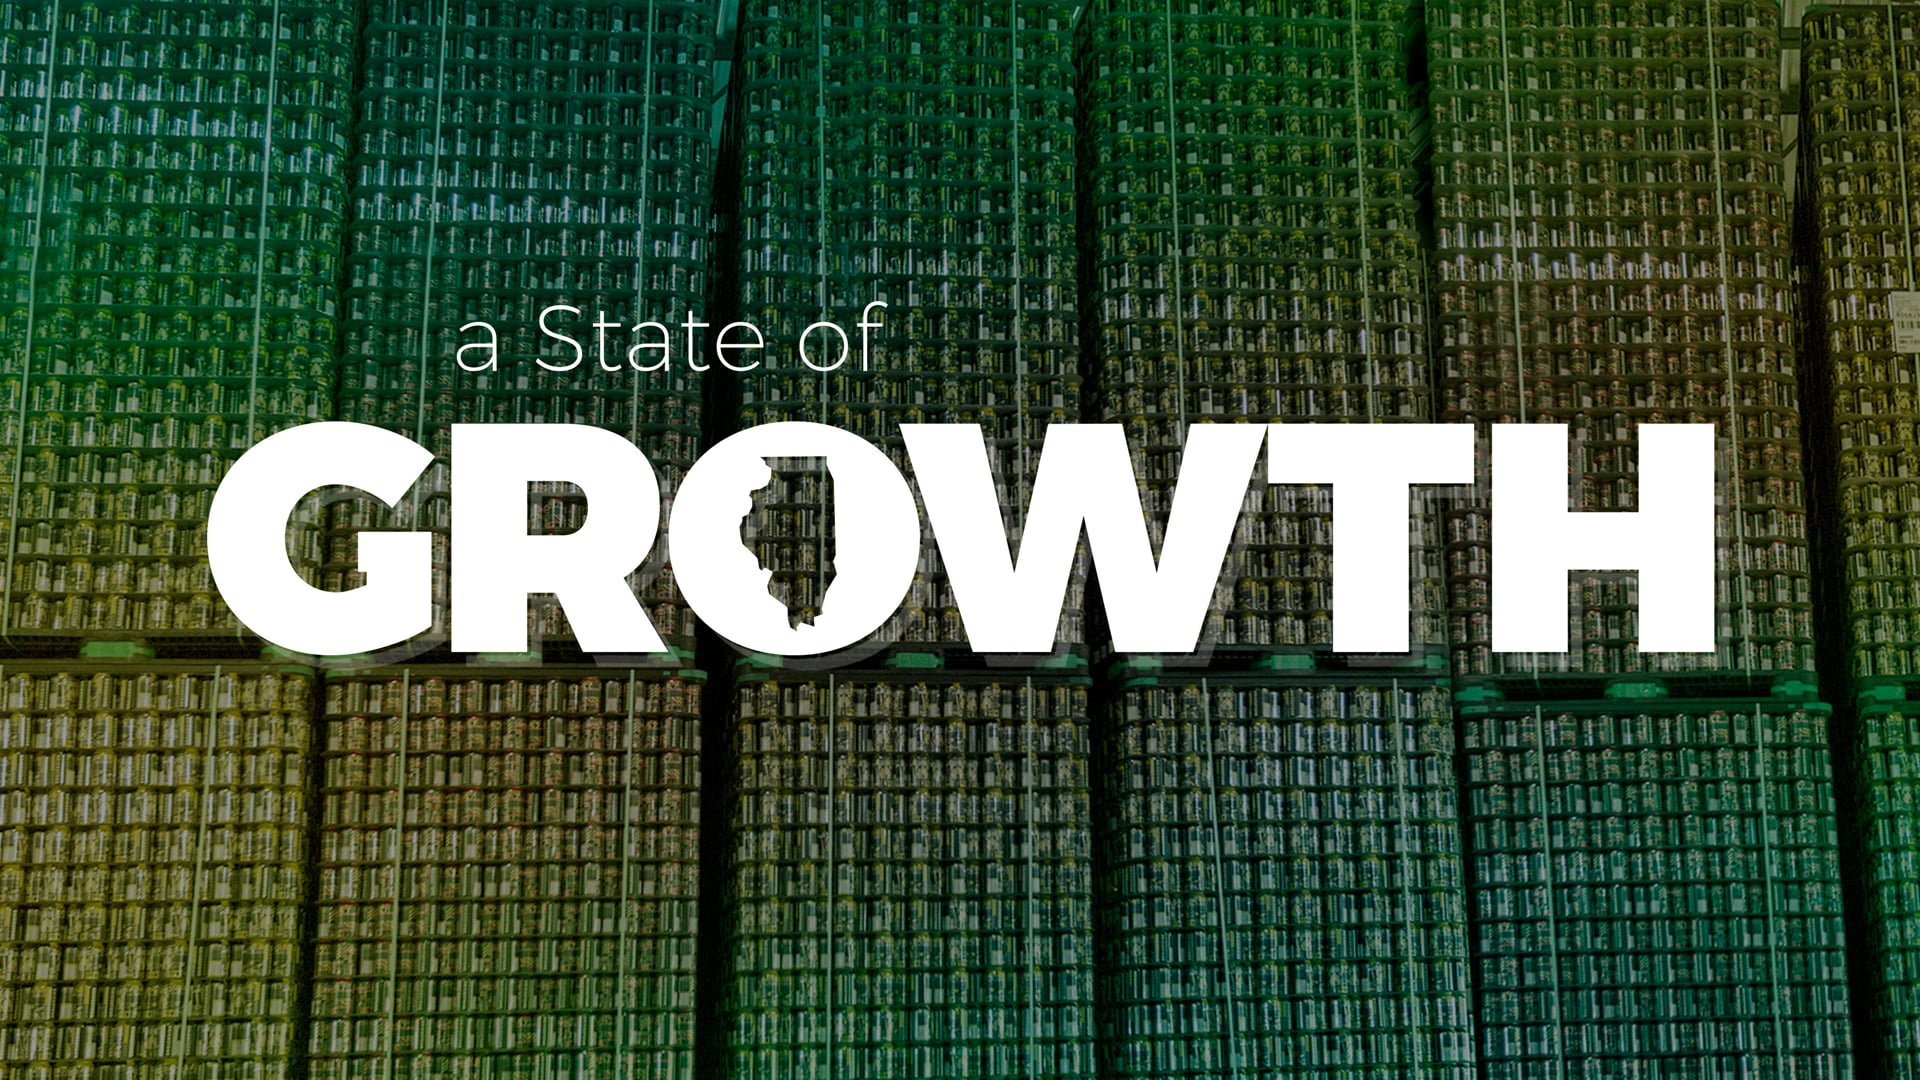 A State of Growth - An Illinois Beer Story